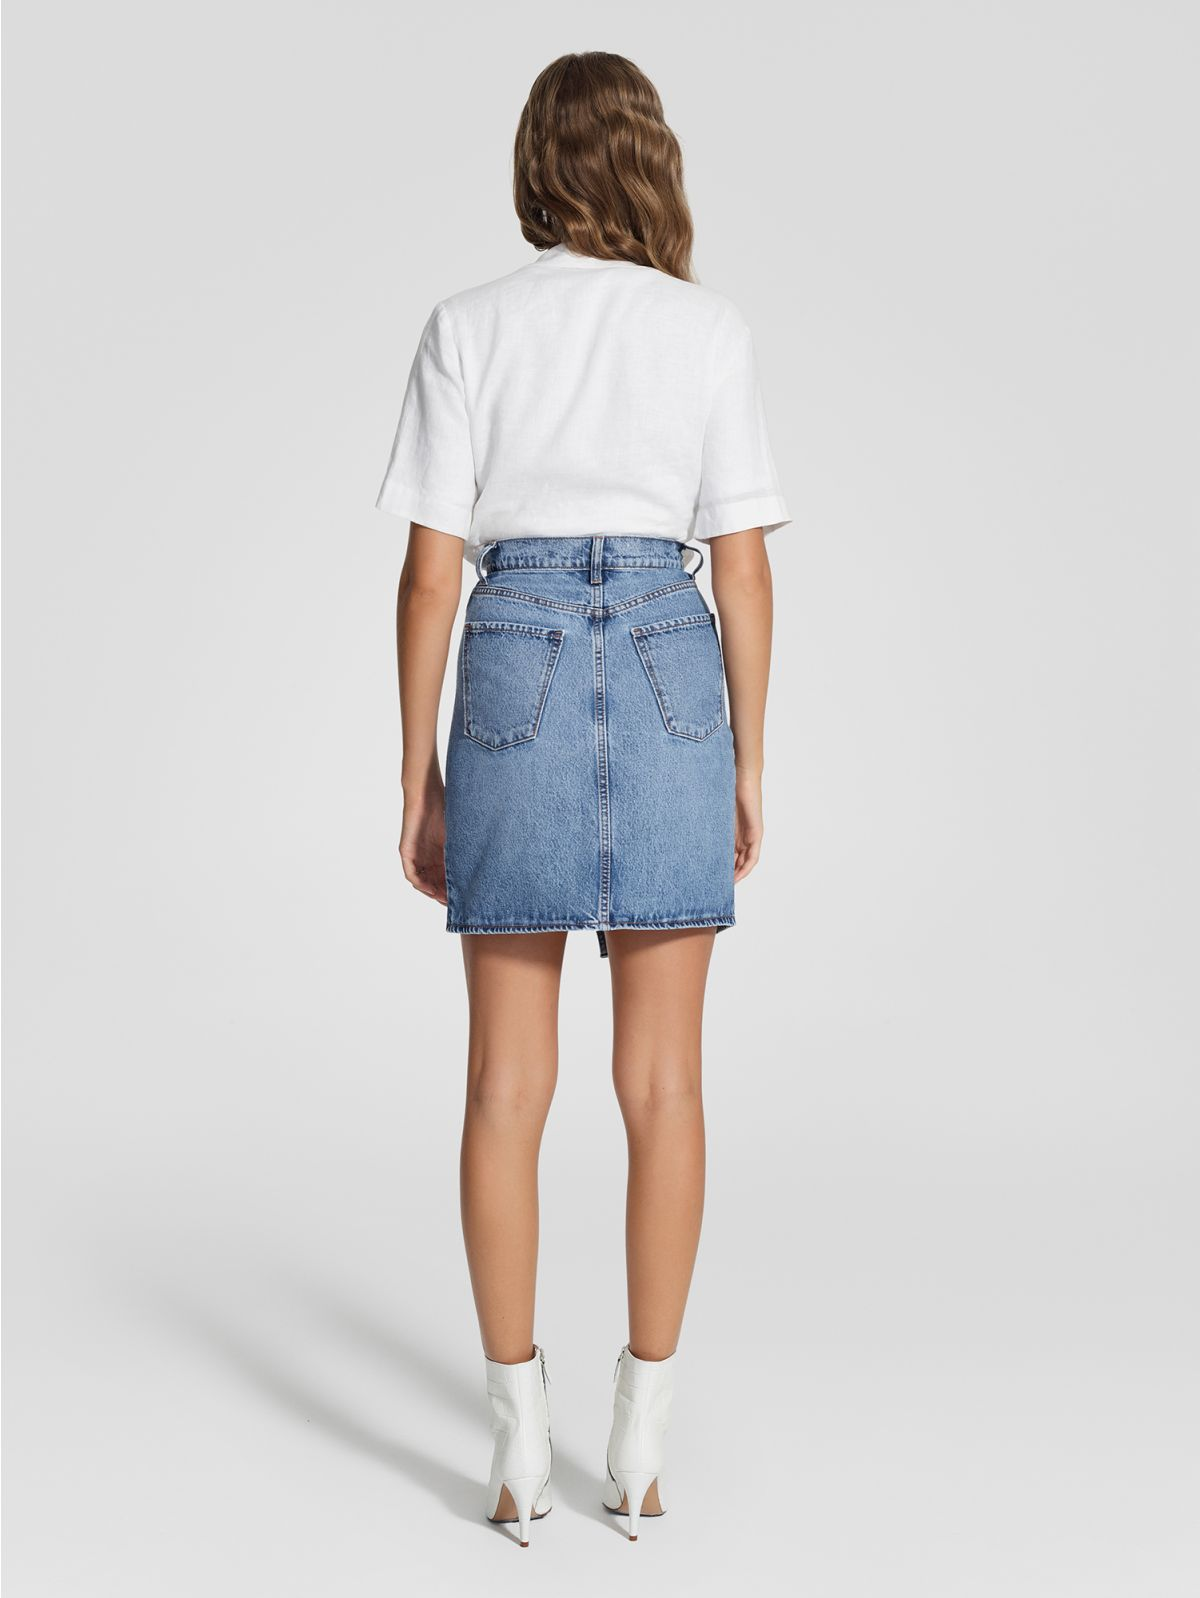 NOBODY DENIM PISA SKIRT - PISA